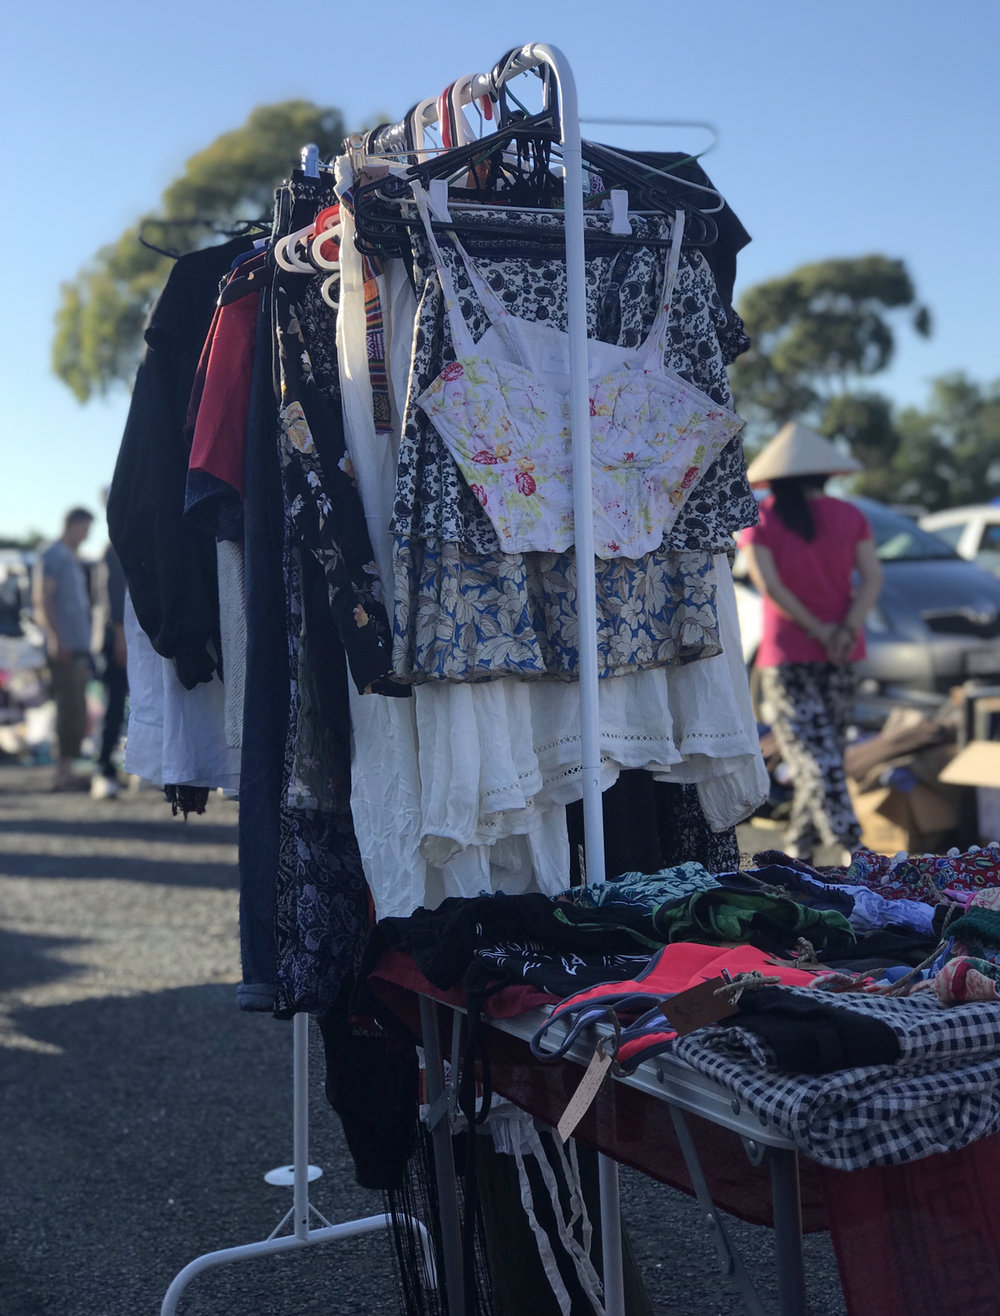 Selling a whole load of my clothes at the market.